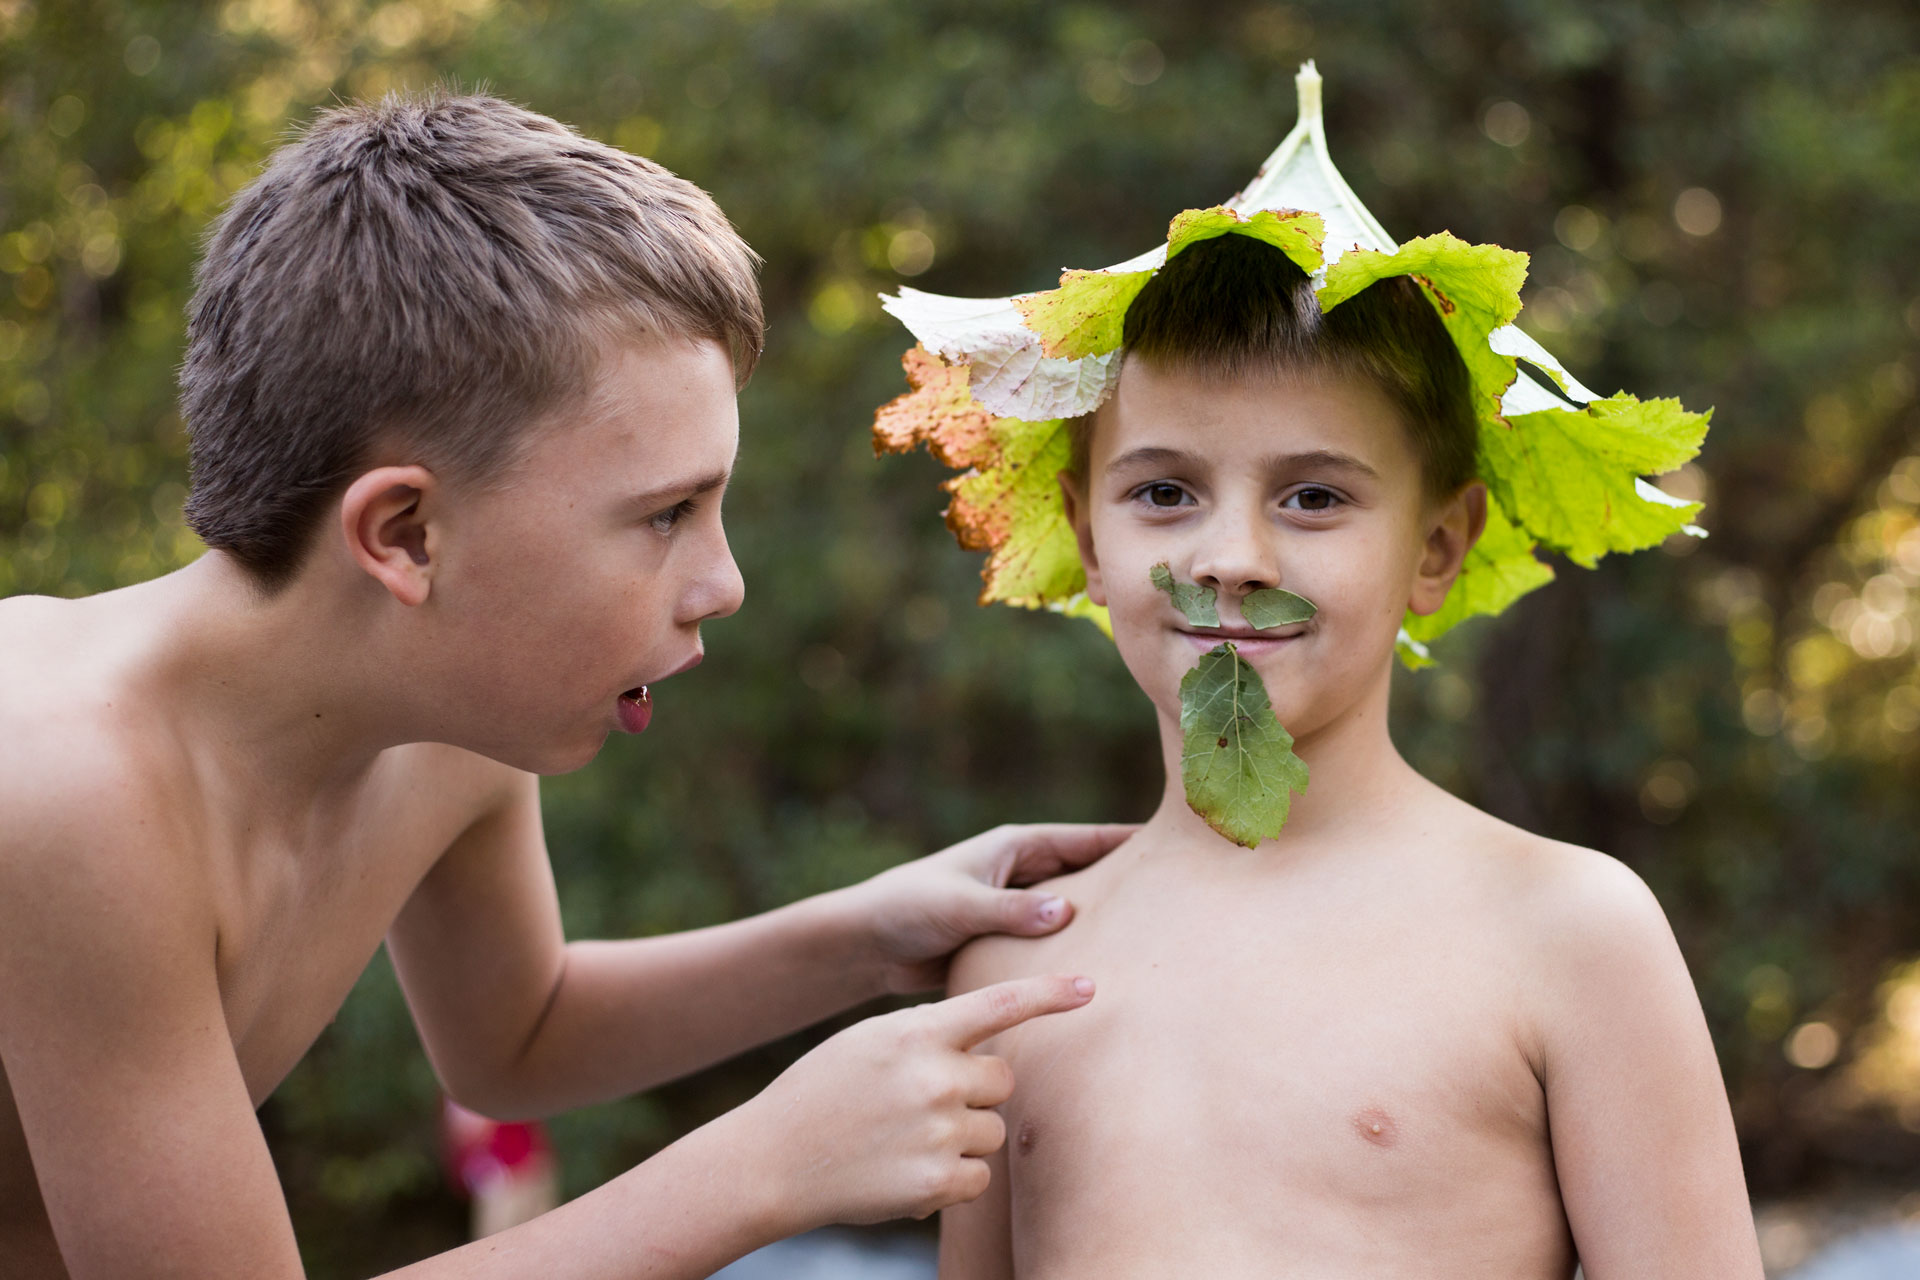 Boy with leaf hat one and another boy looking and pointing at him